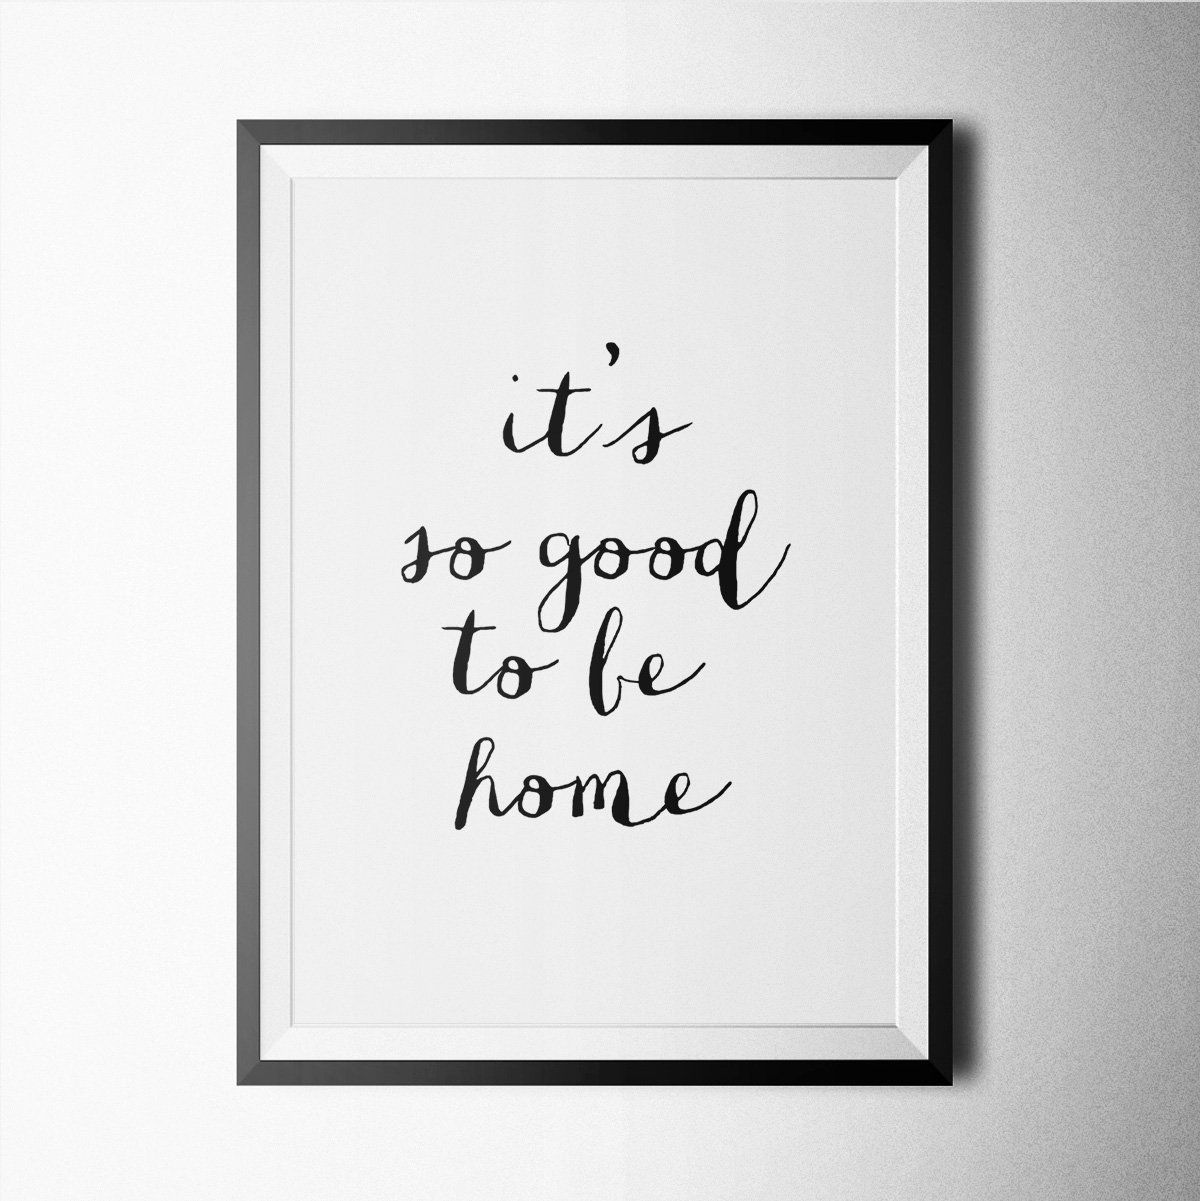 Pin by Raena Marotta on Decor | Pinterest | Printing and Room